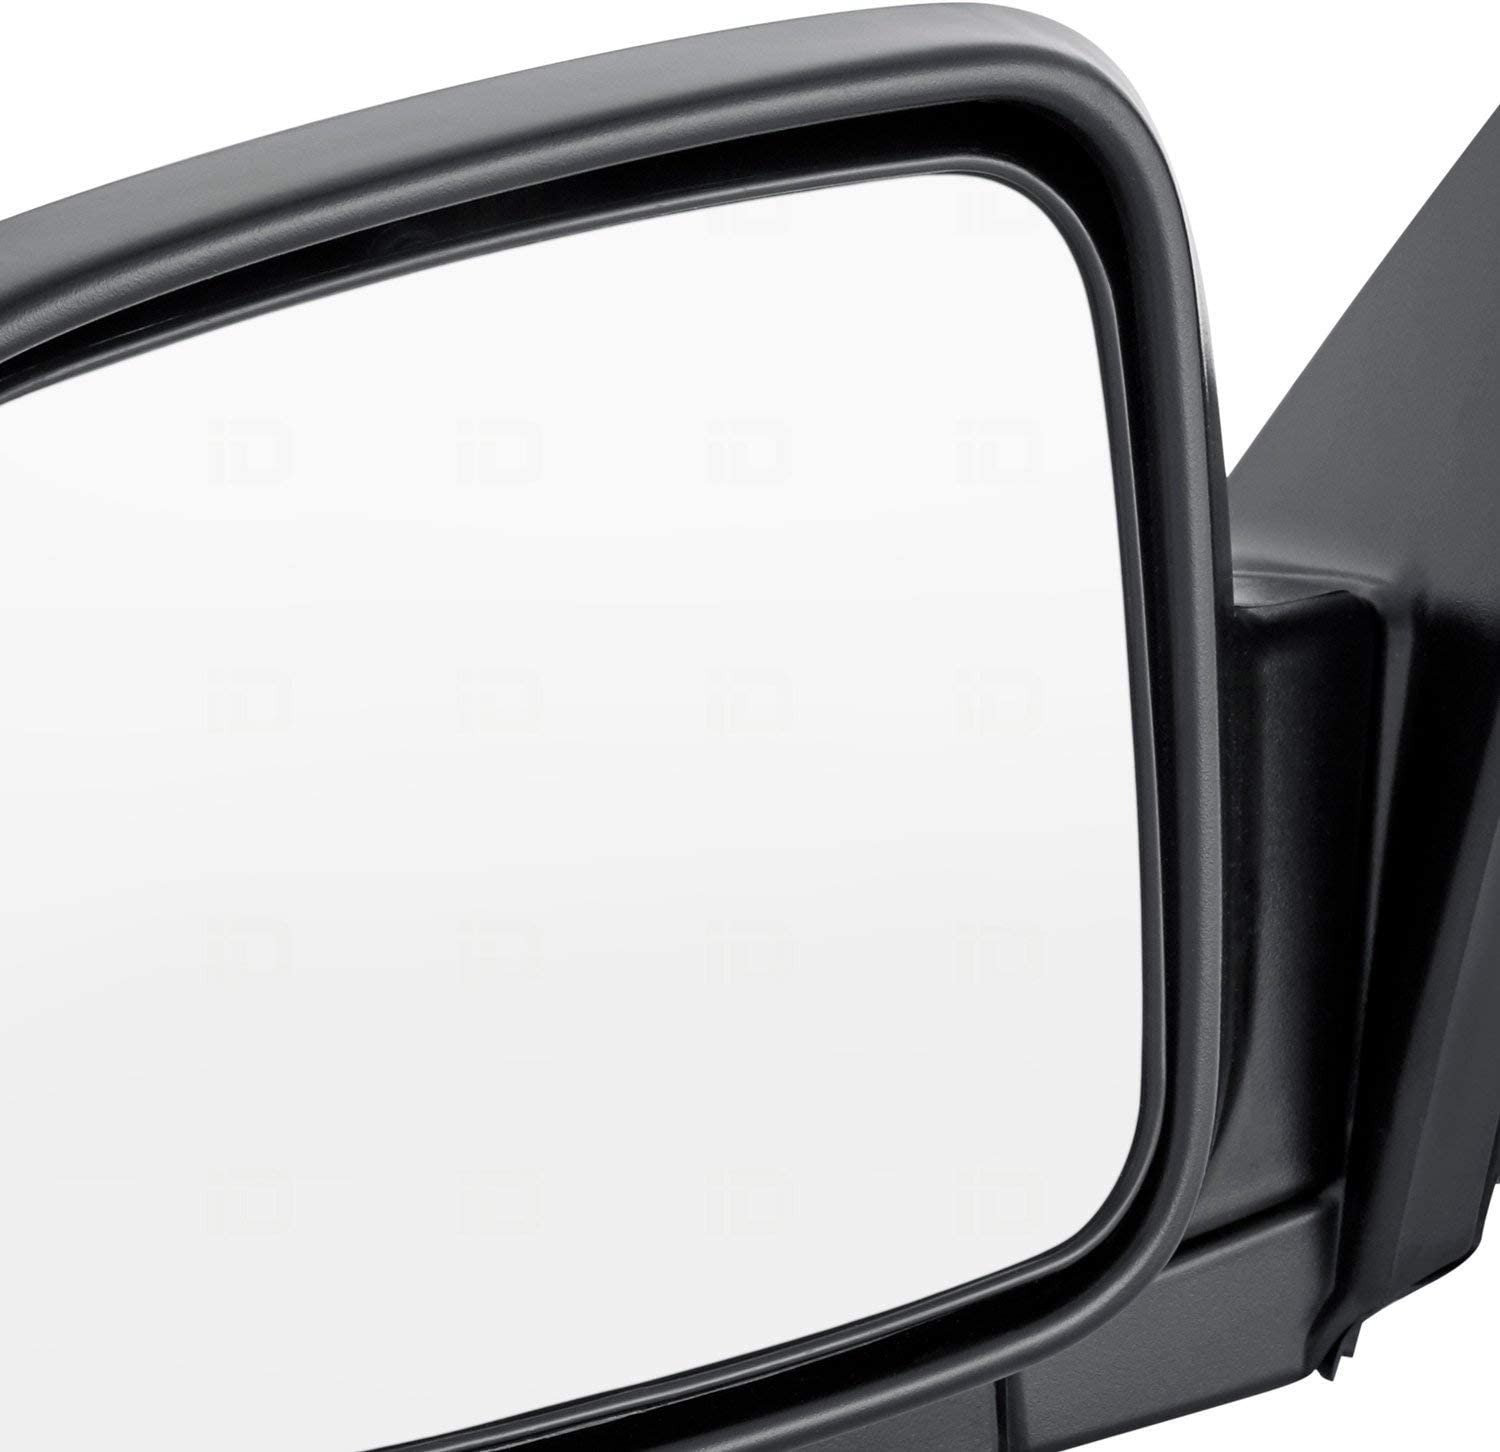 for 2002-2006 Honda CR-V Non-Heated Roane Concepts Replacement Left Driver Side Door Mirror Power Folding HO1320215 Black